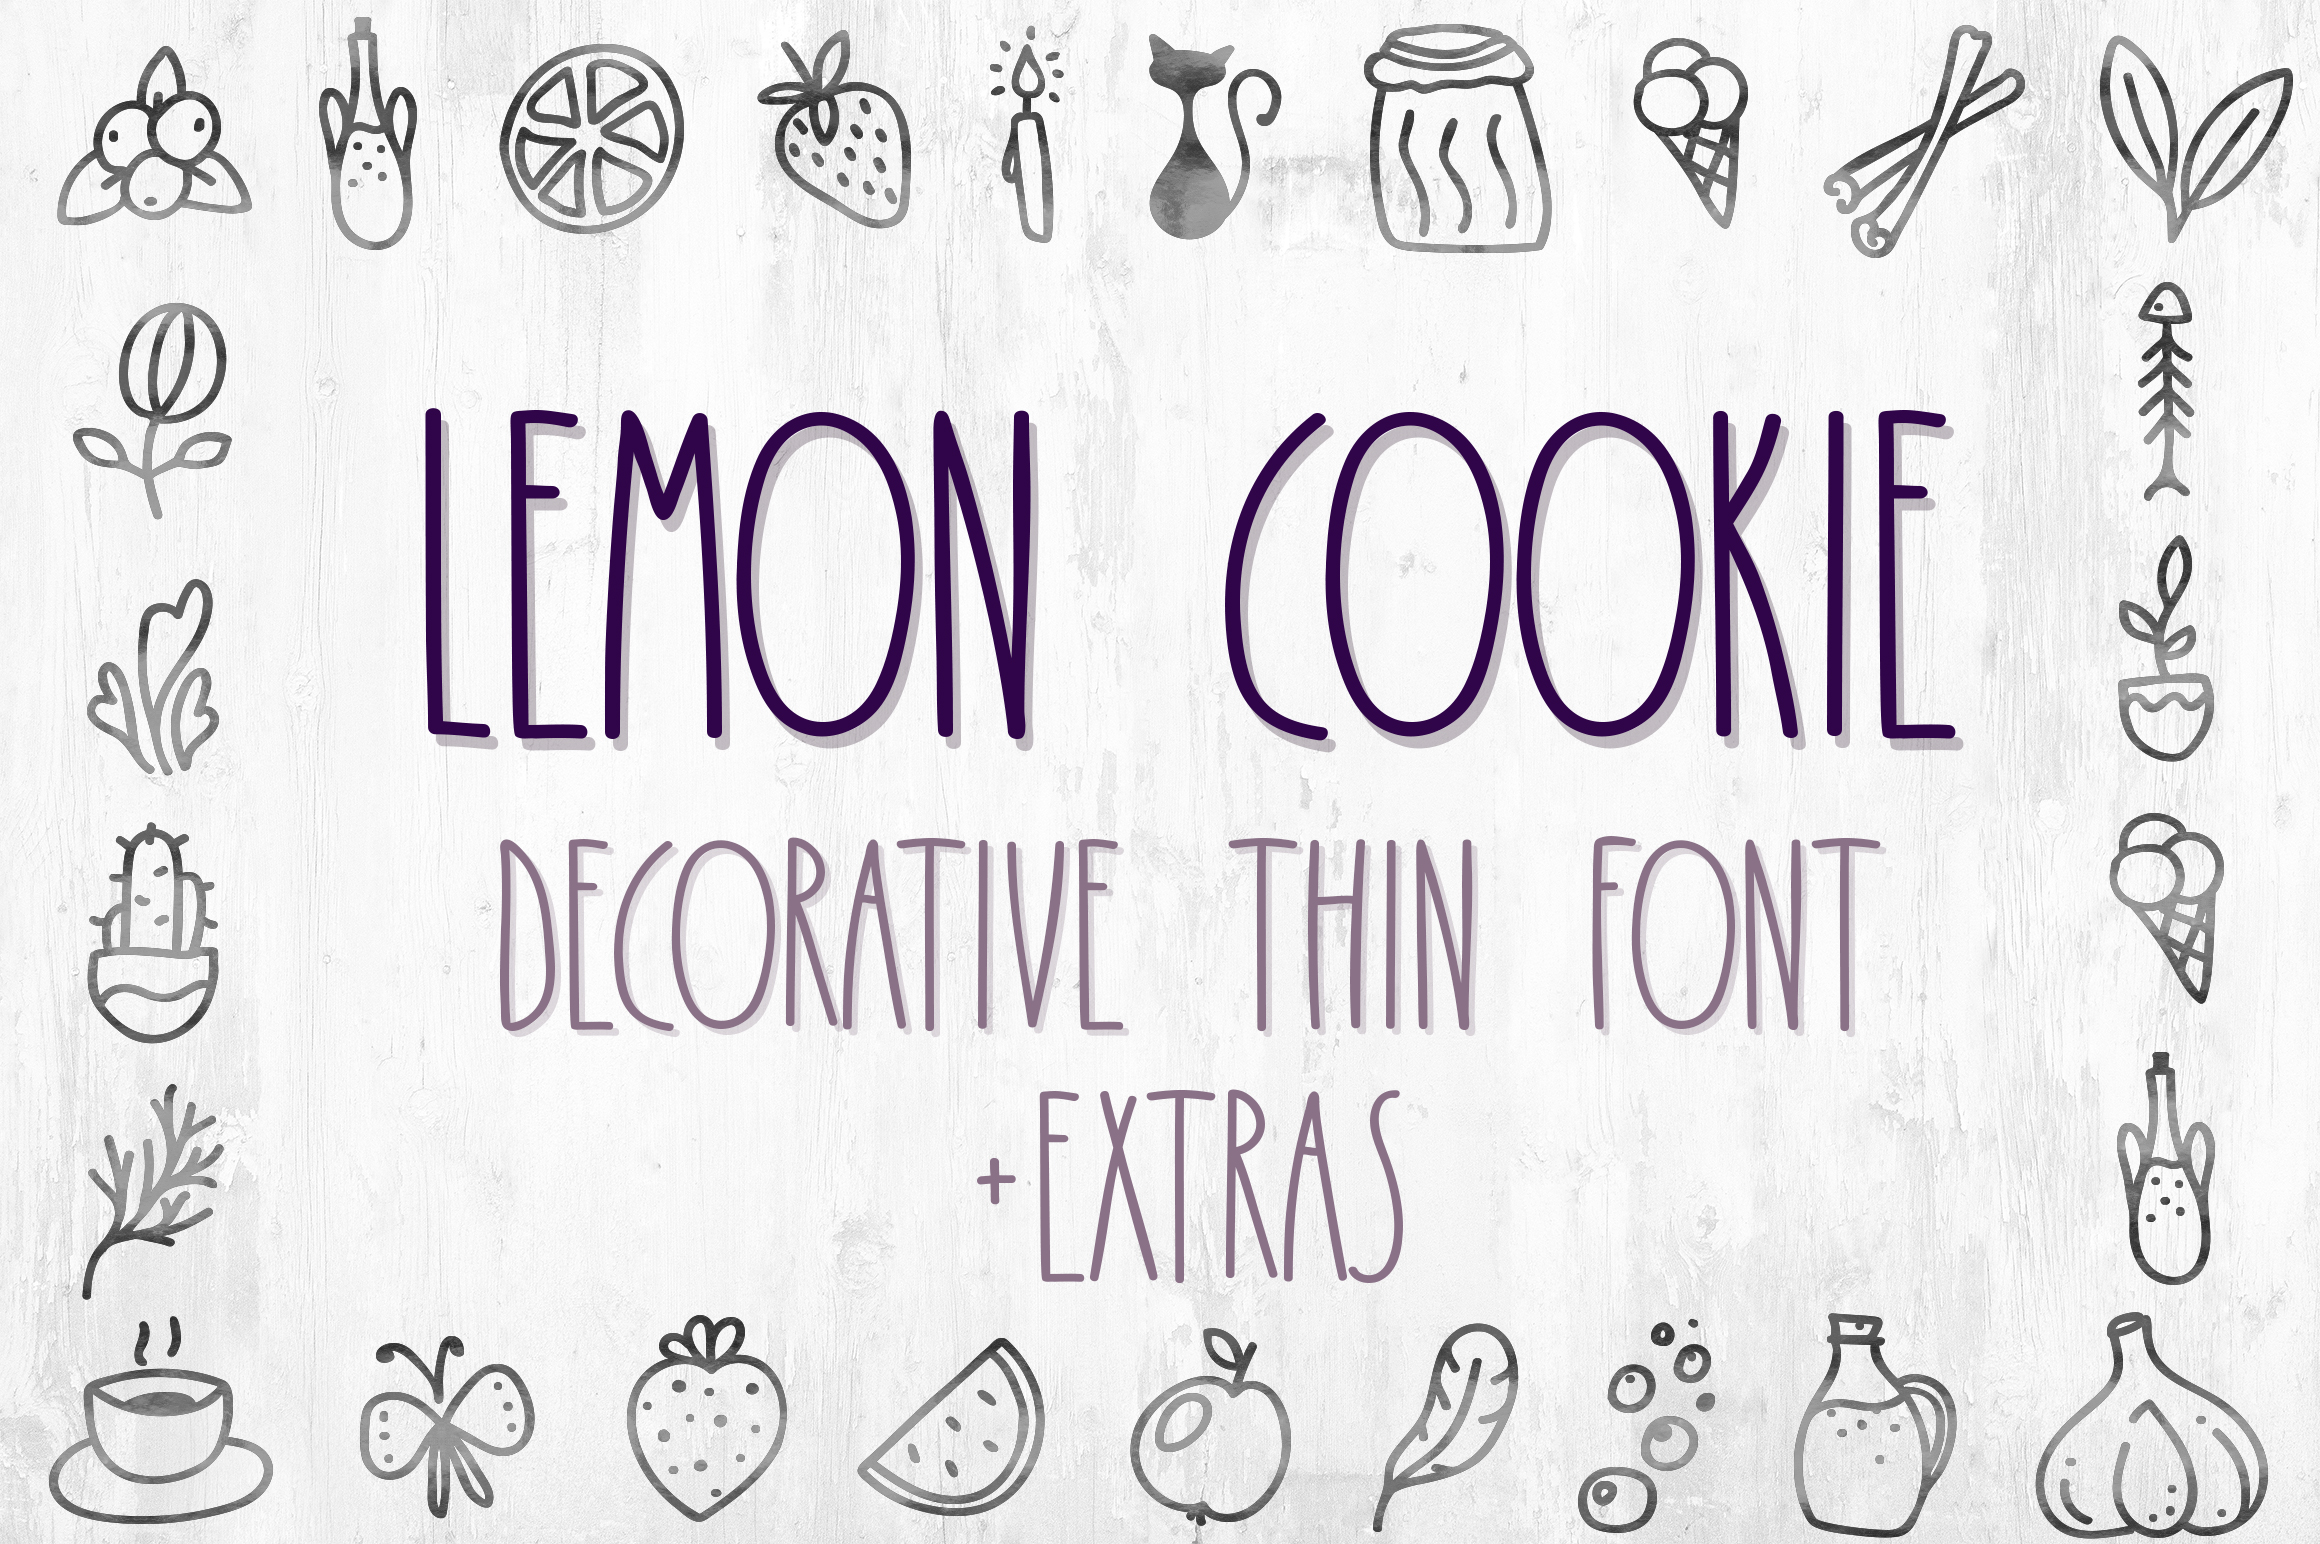 Lemon Cookie - thin font with extra characters pictures example image 1